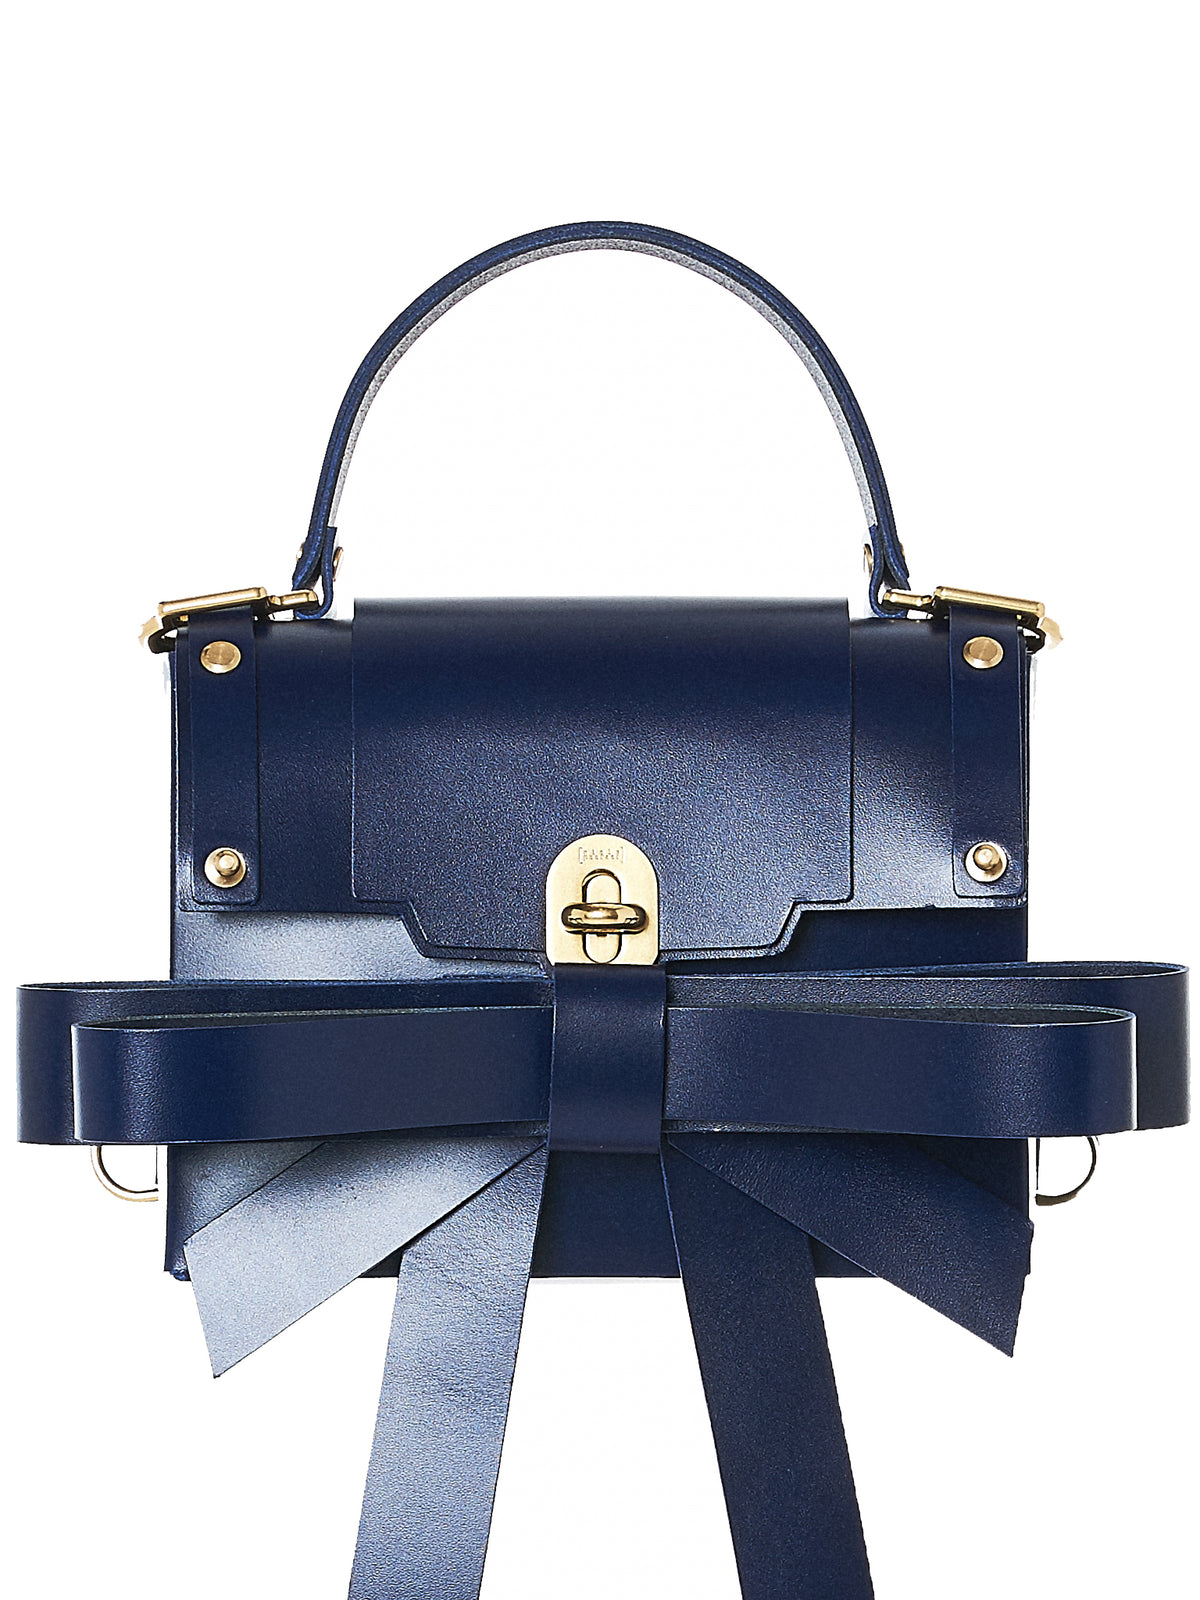 Ribboned Bowtie Leather Purse (NPAW17-14-EVENING-BLUE)